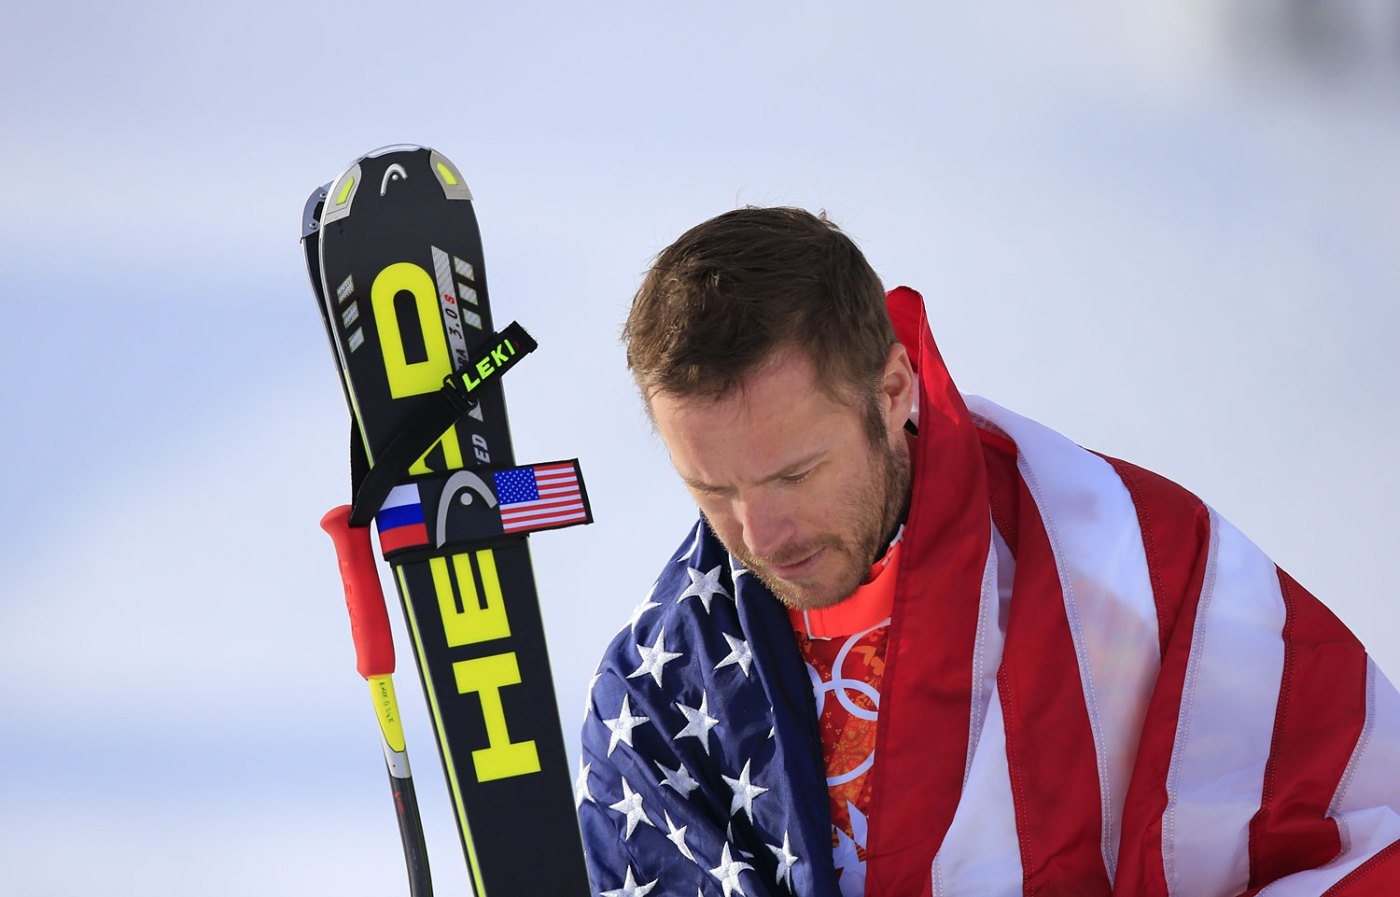 Bode Miller arrives on the podium during the Men's Alpine Skiing Super-G Flower Ceremony.